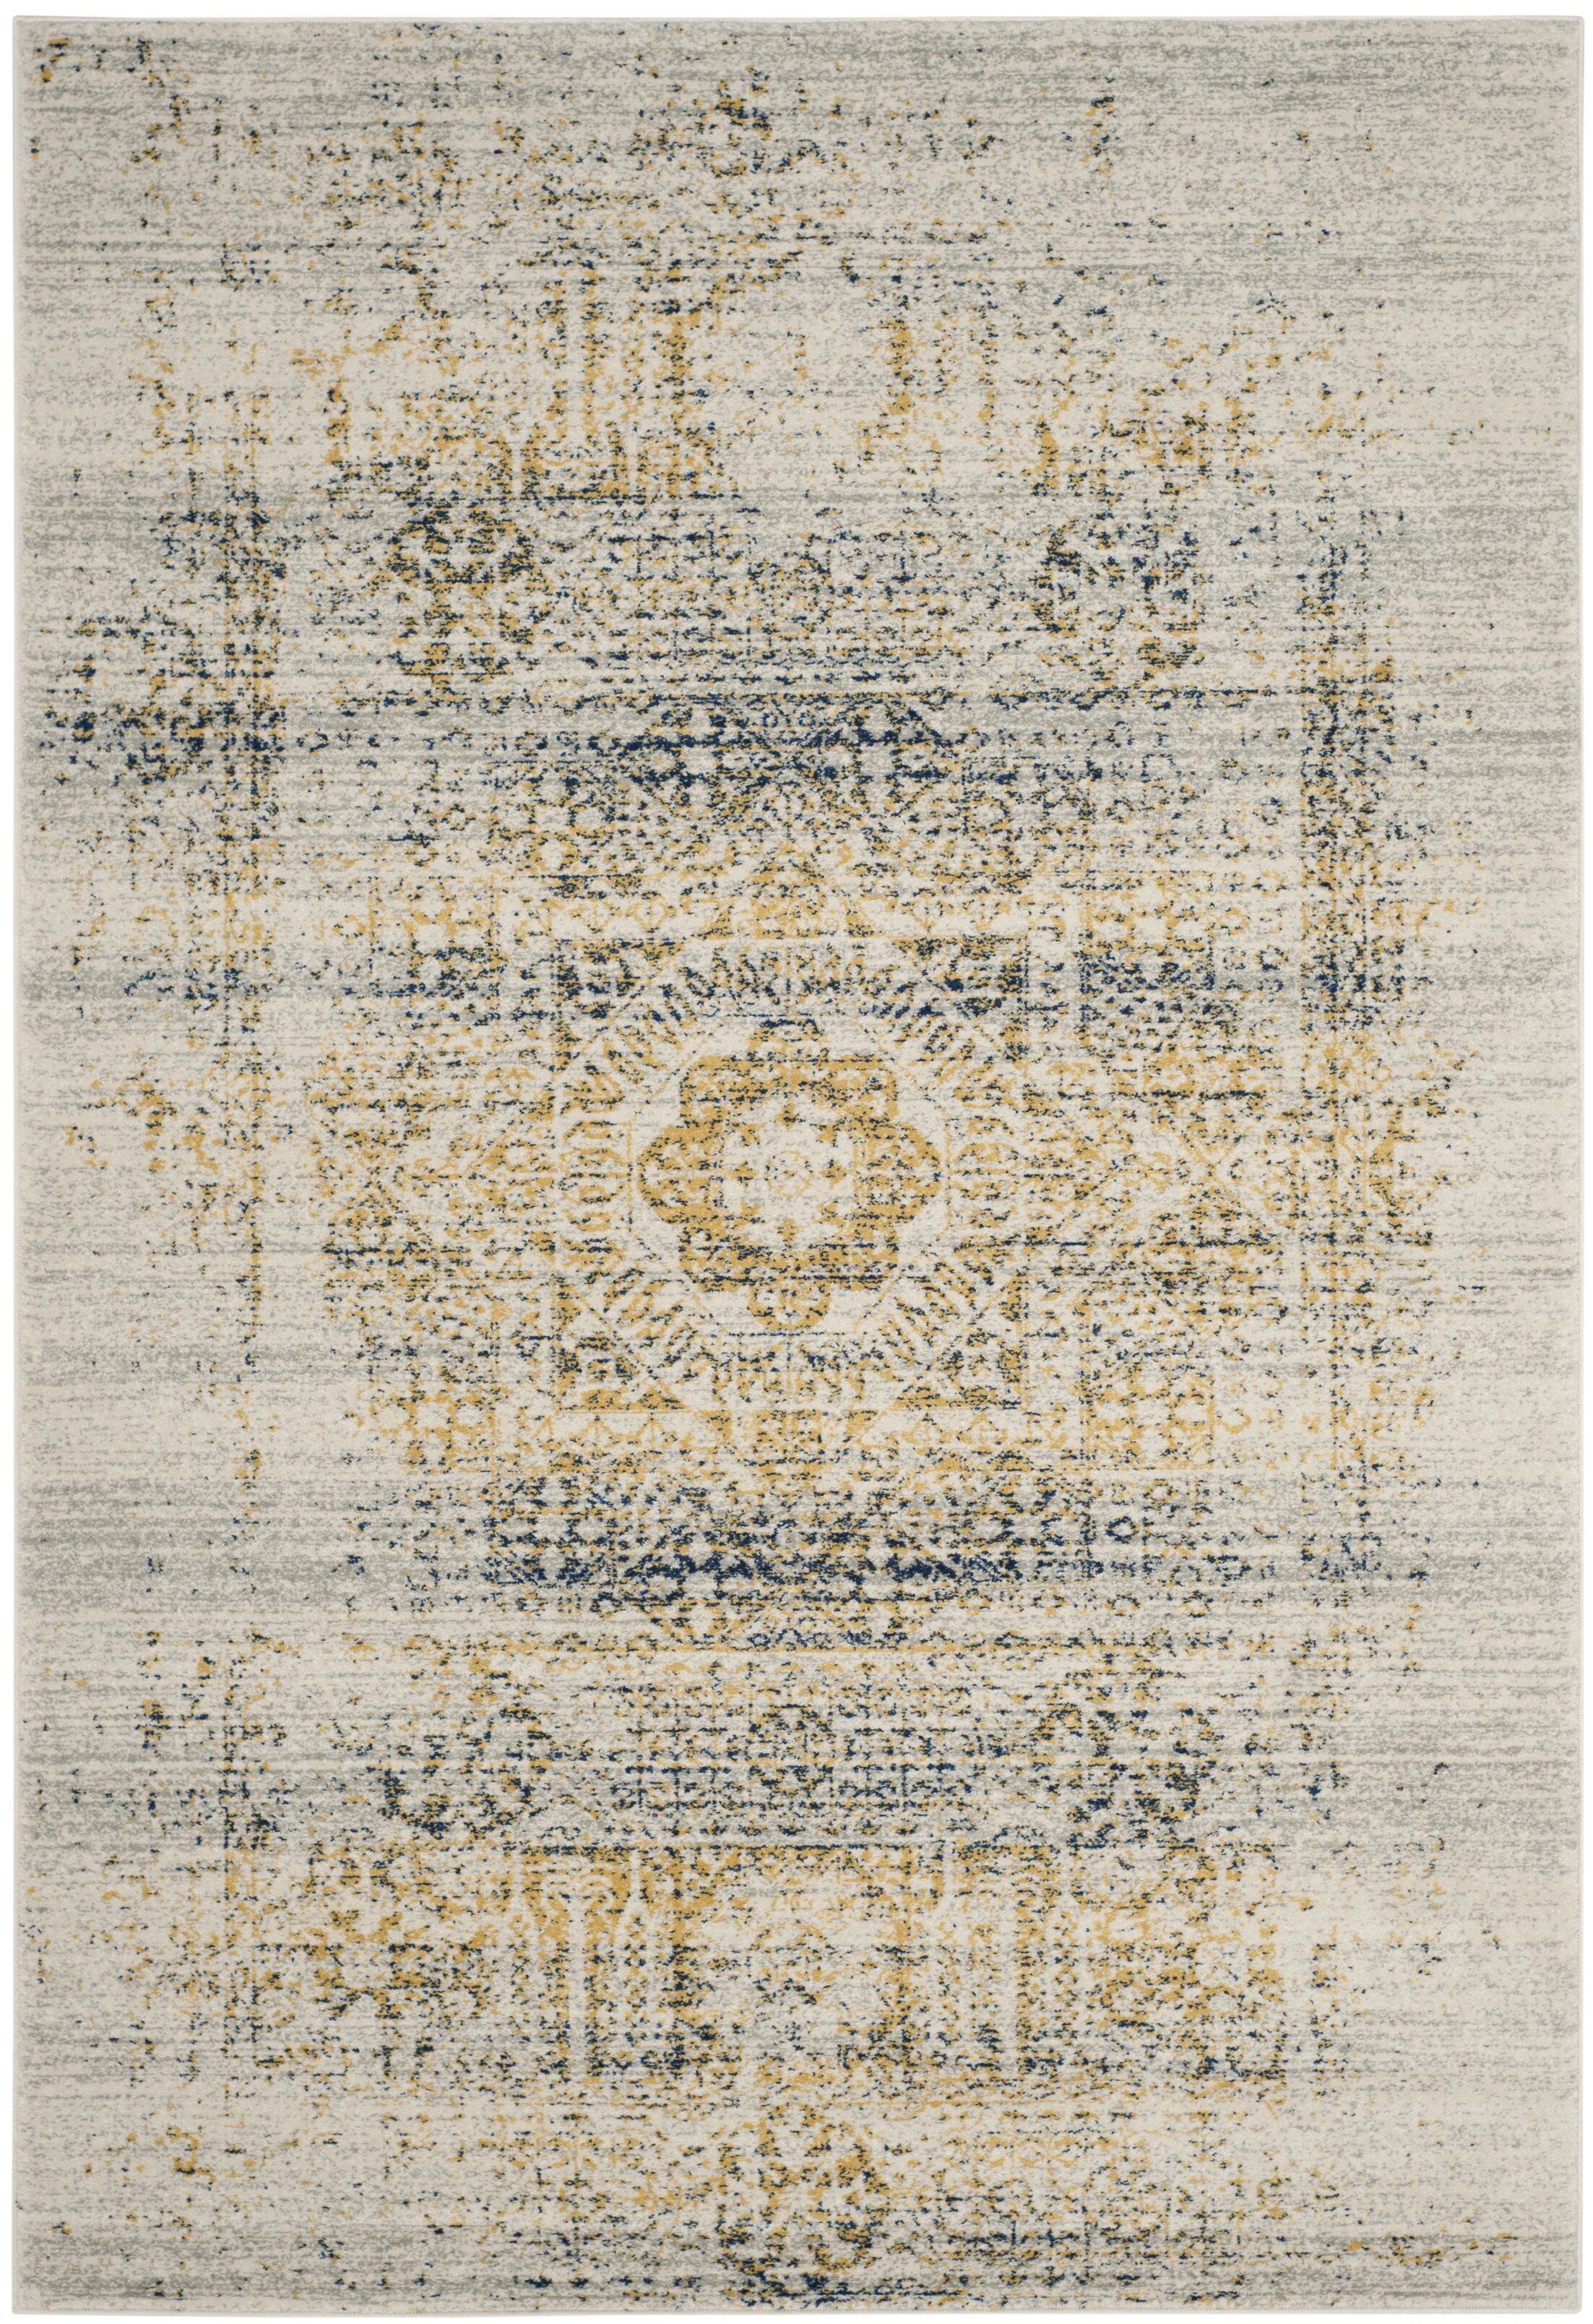 Mccranie Ivory/Blue Area Rug Rug Size: Square 6'7